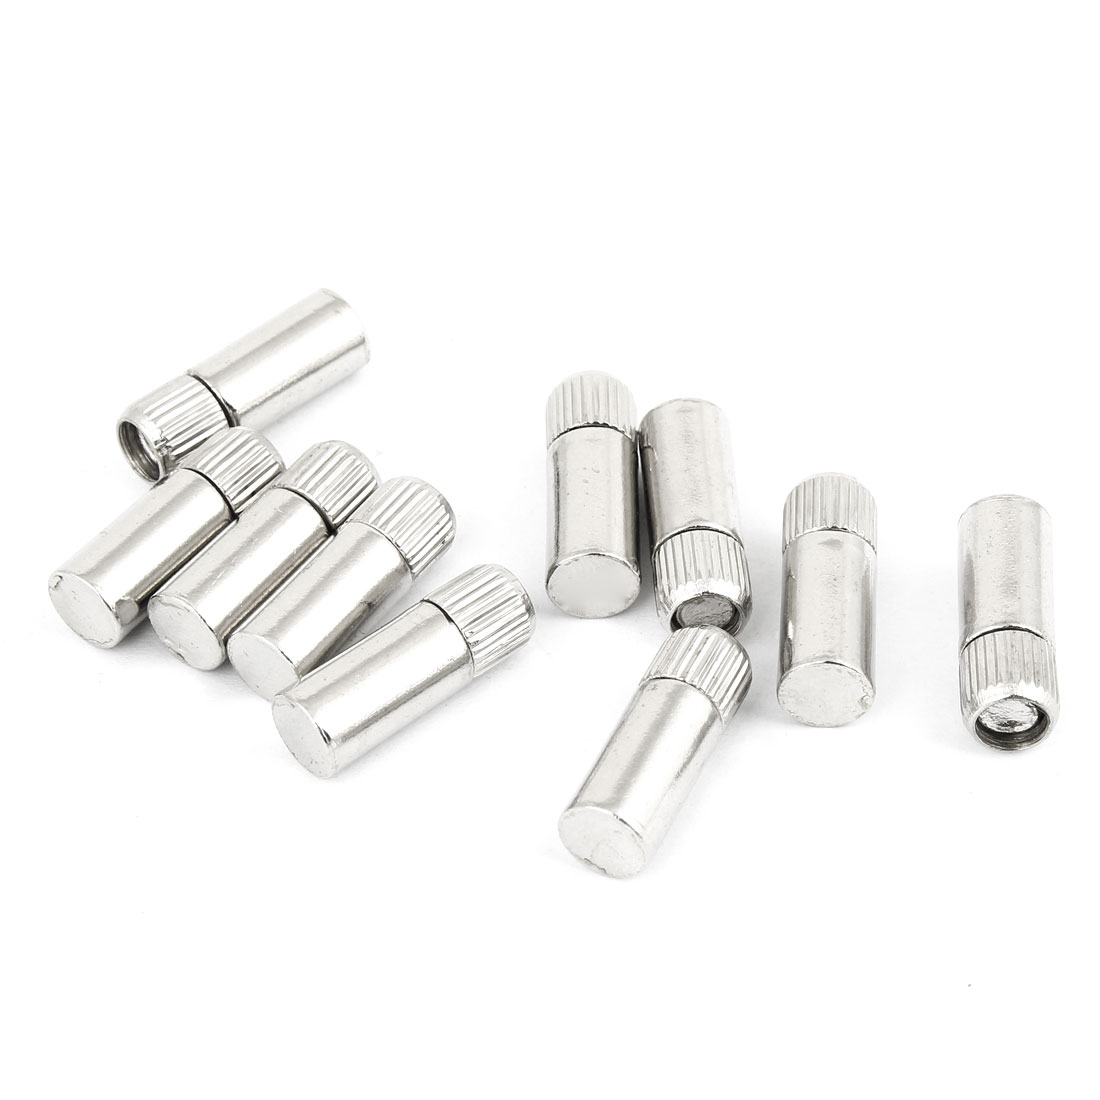 Glass Shelf Studs Pegs Holder Threaded Silver Tone 10 Pcs